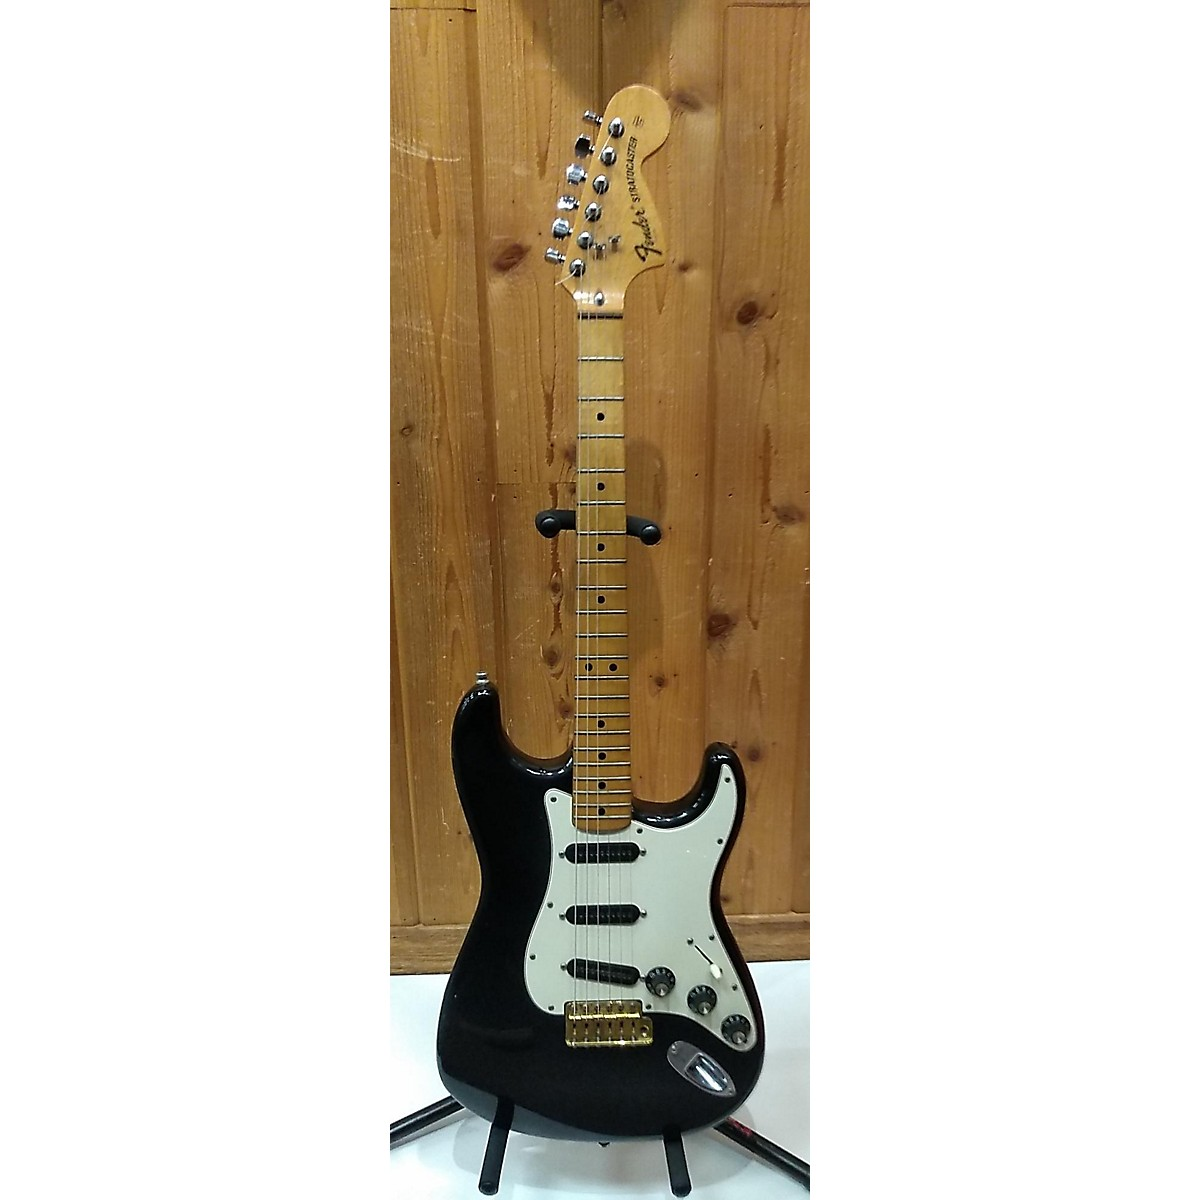 Fender 1975 Stratocaster Solid Body Electric Guitar